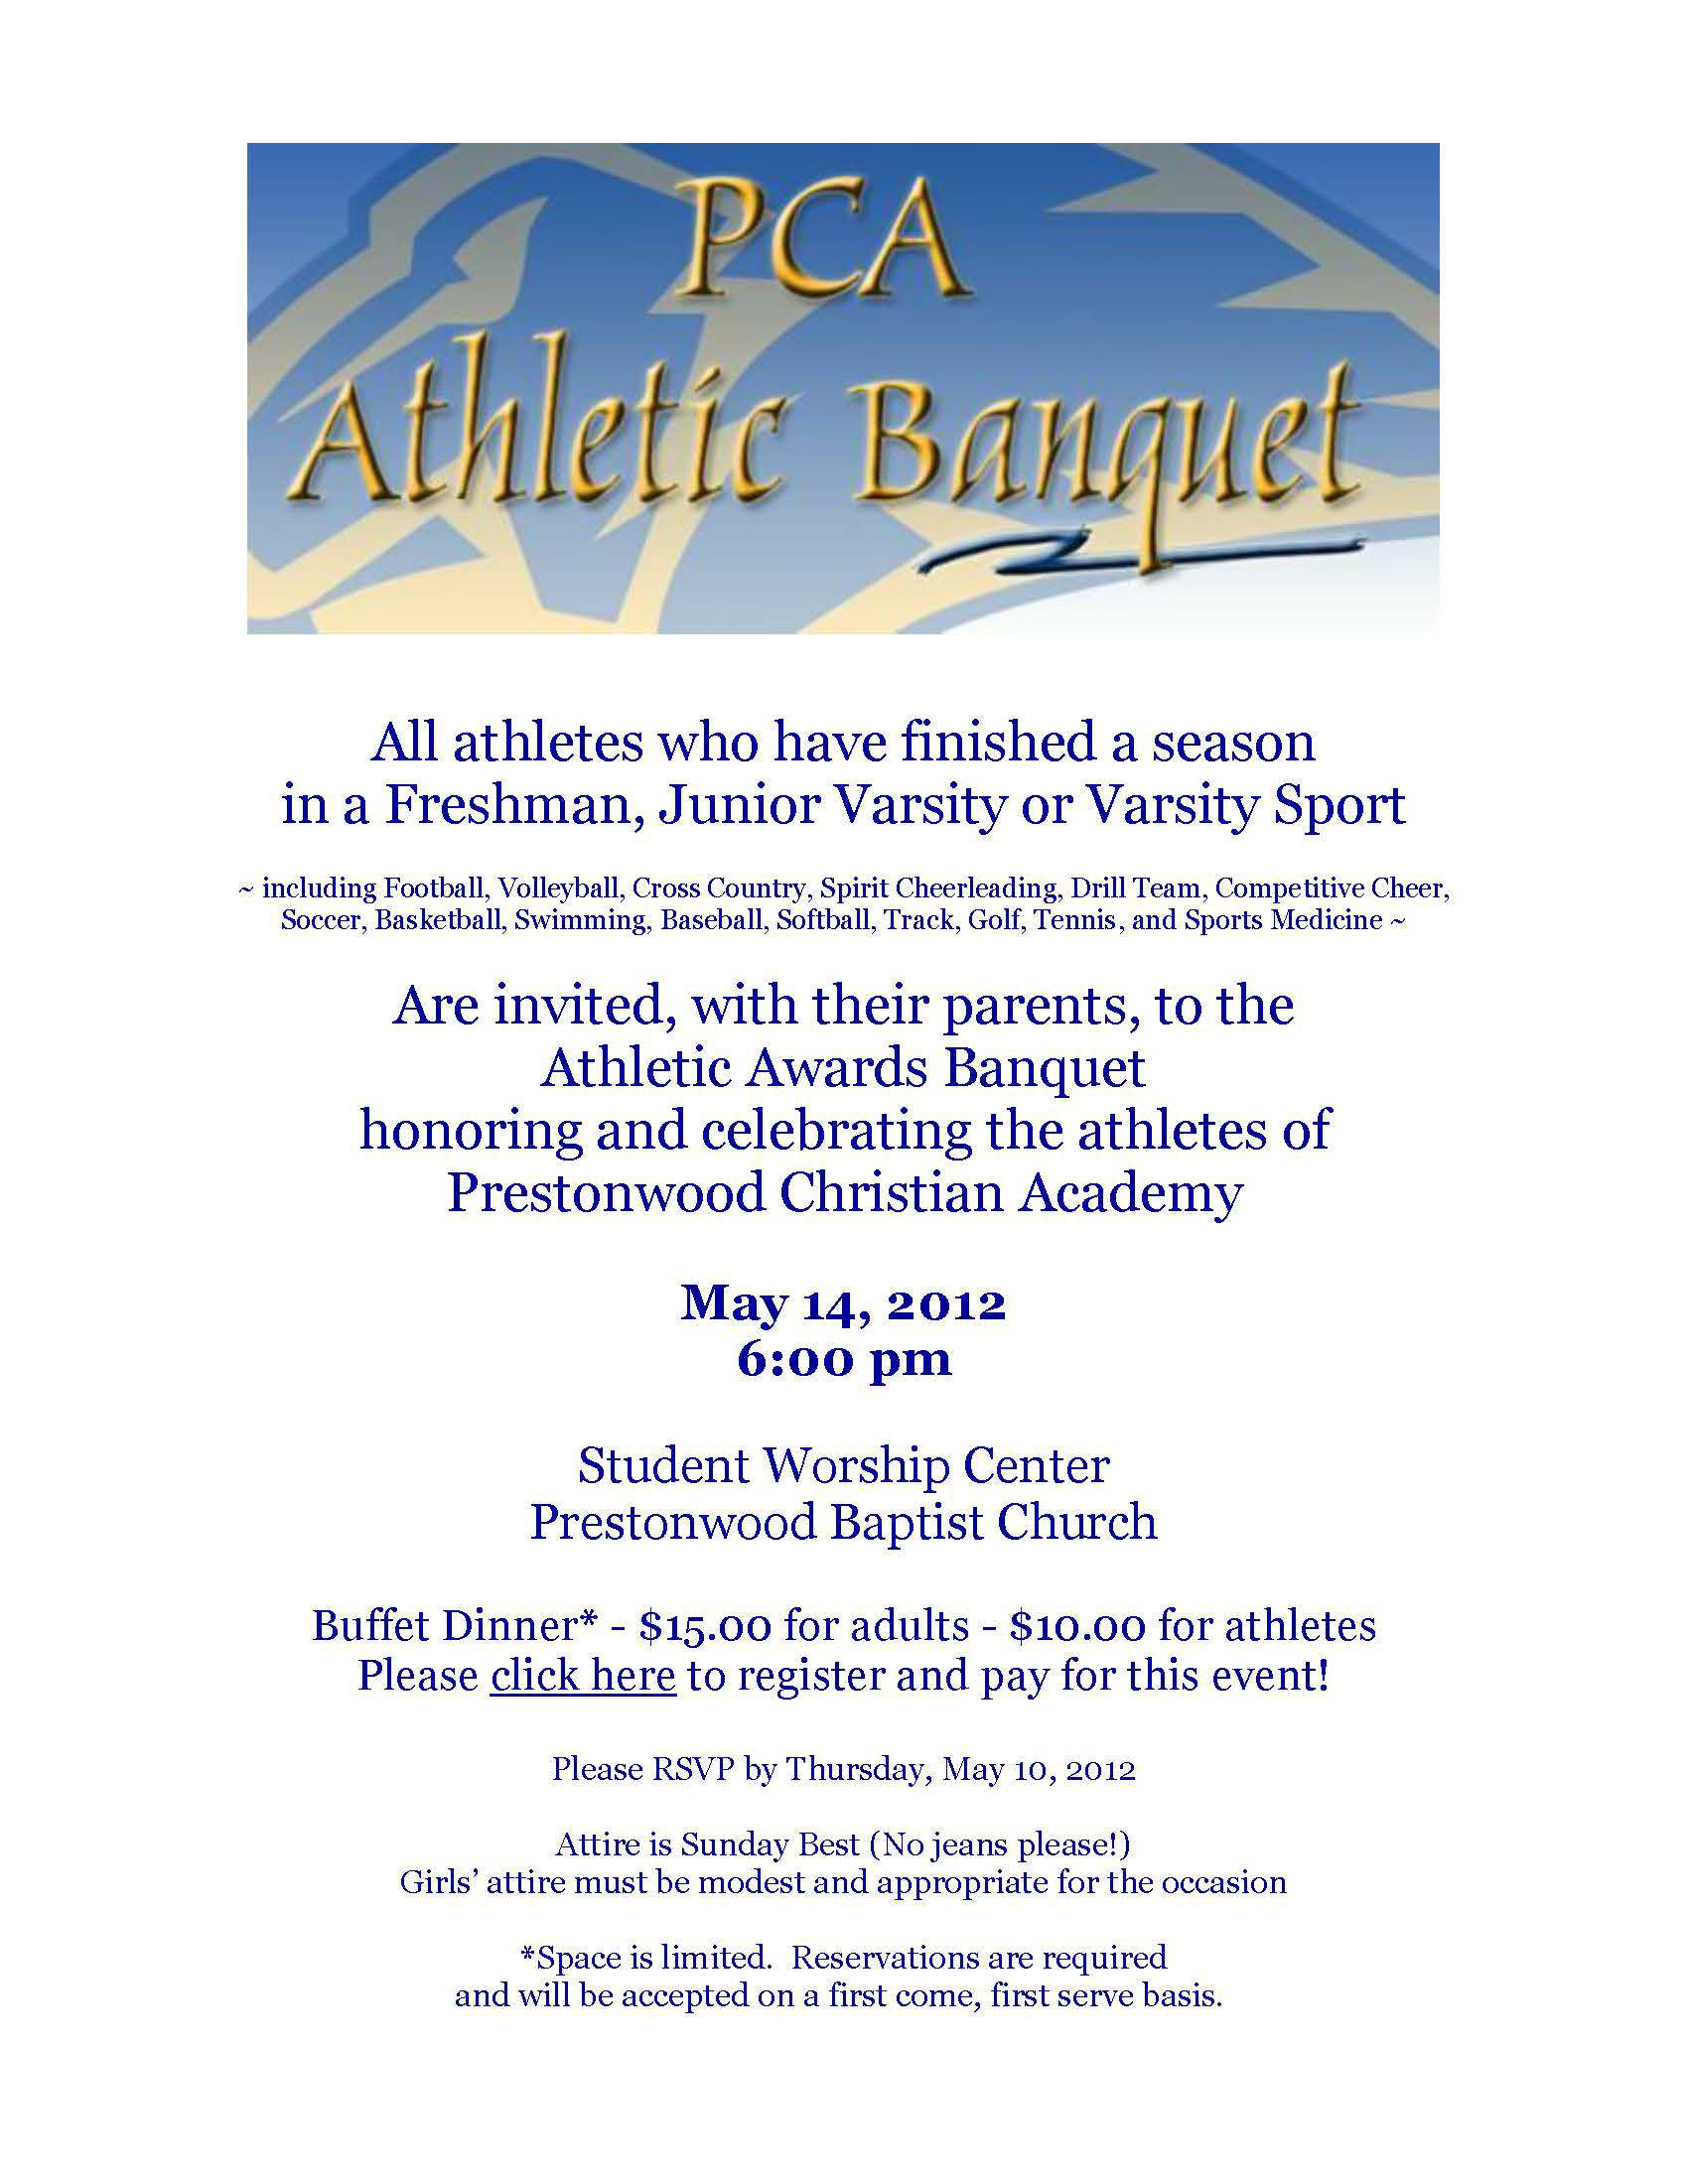 Sportsbanquetinvitationwordingg sports banquet invitation wording 1700 x 2200 stopboris Images